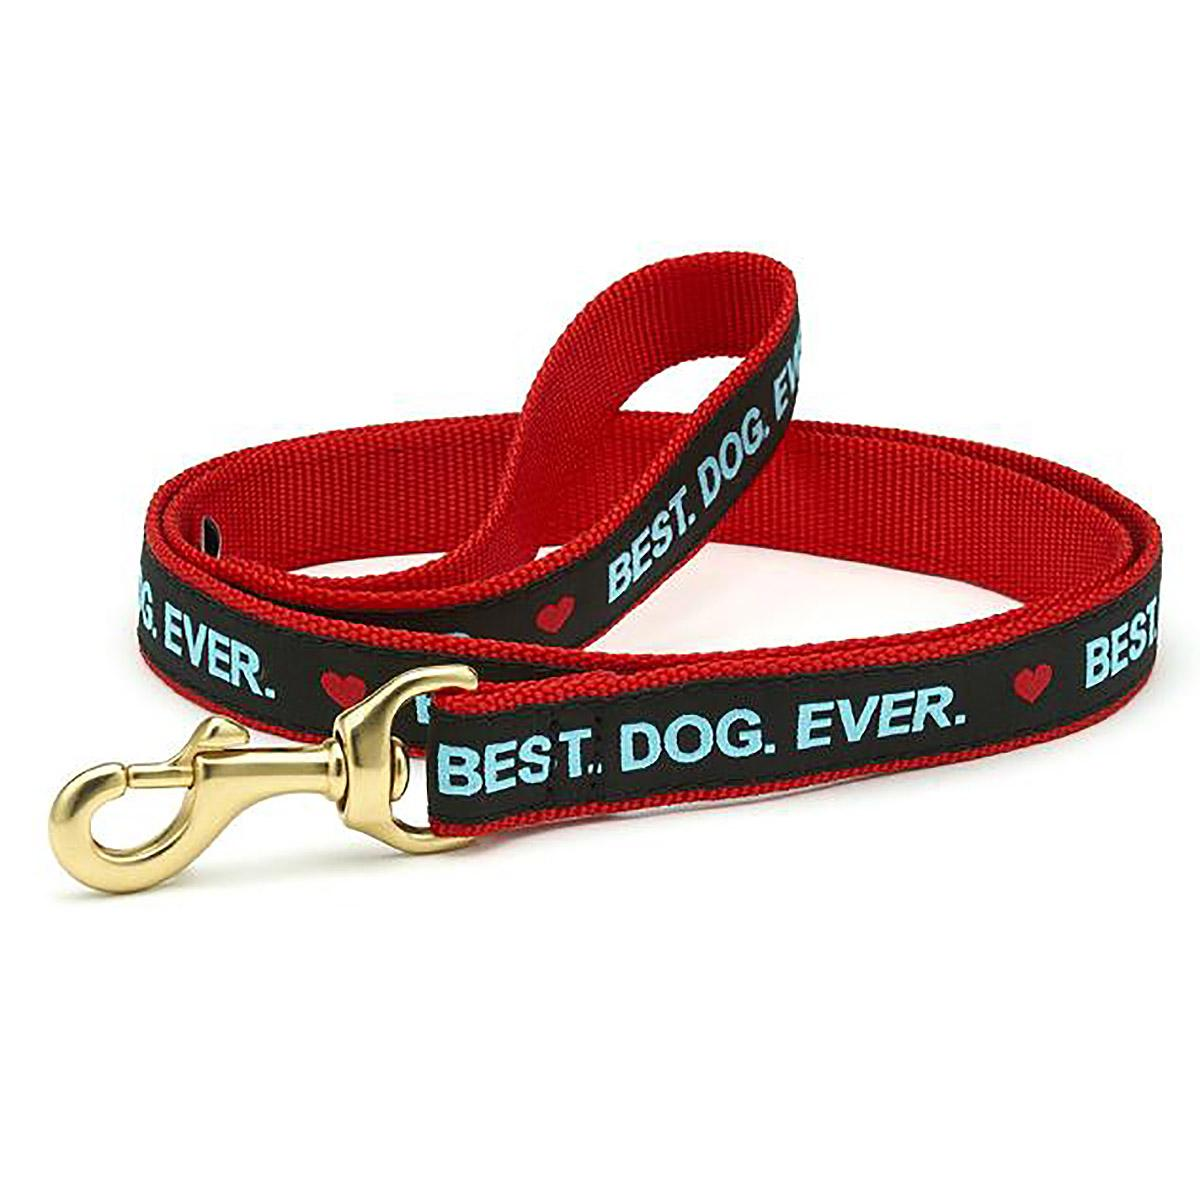 Best. Dog. Ever. Dog Leash by Up Country